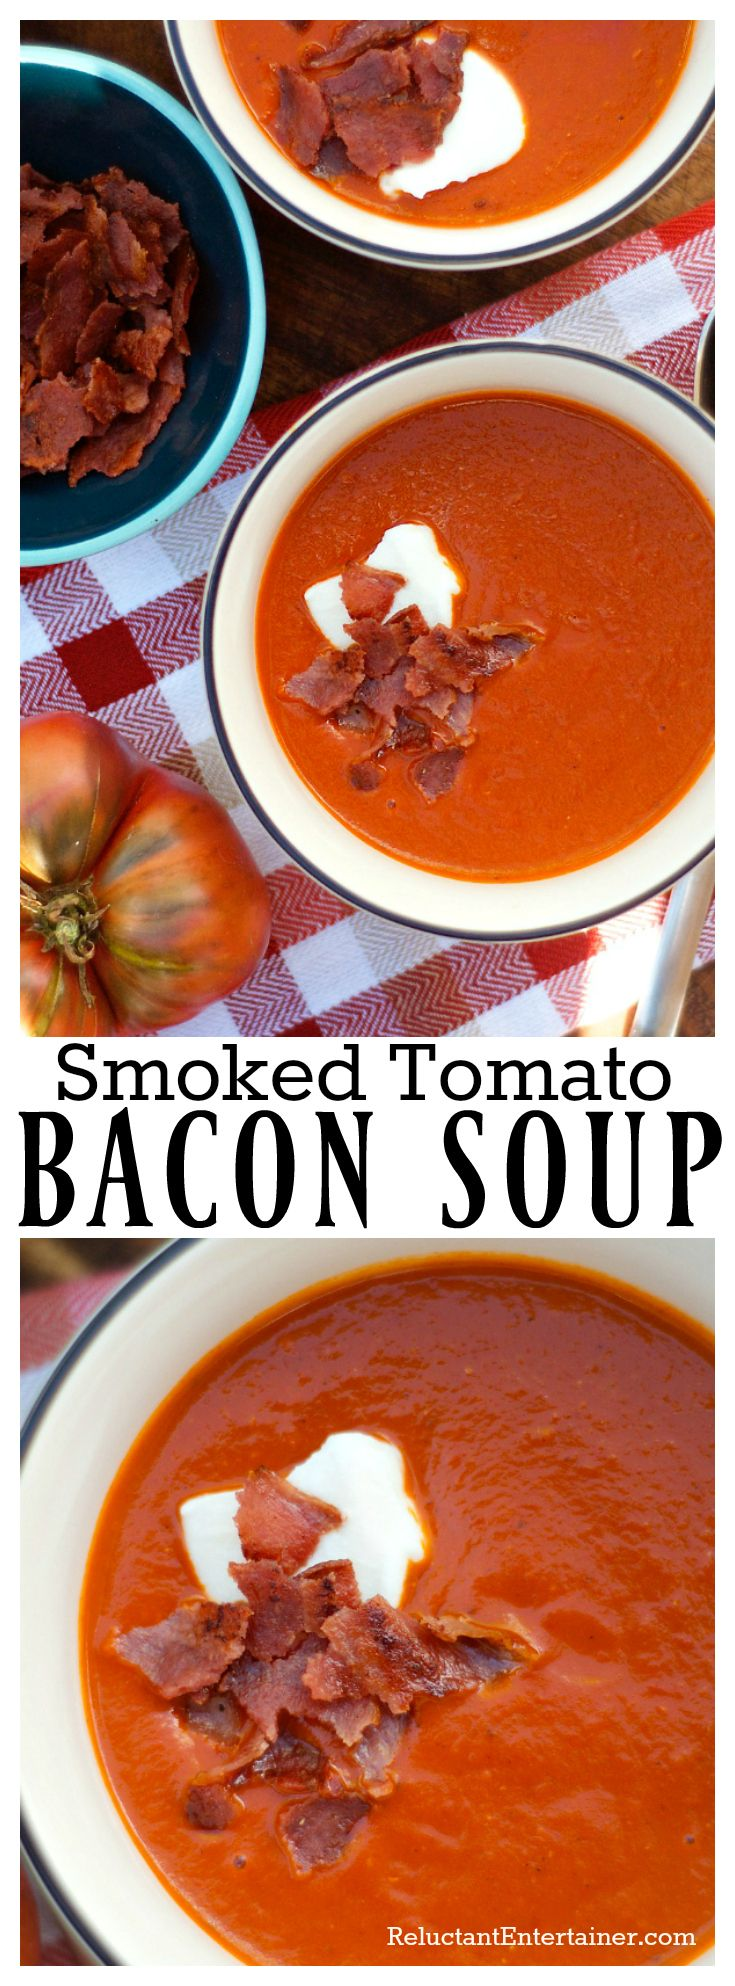 Smoked Tomato Bacon Soup